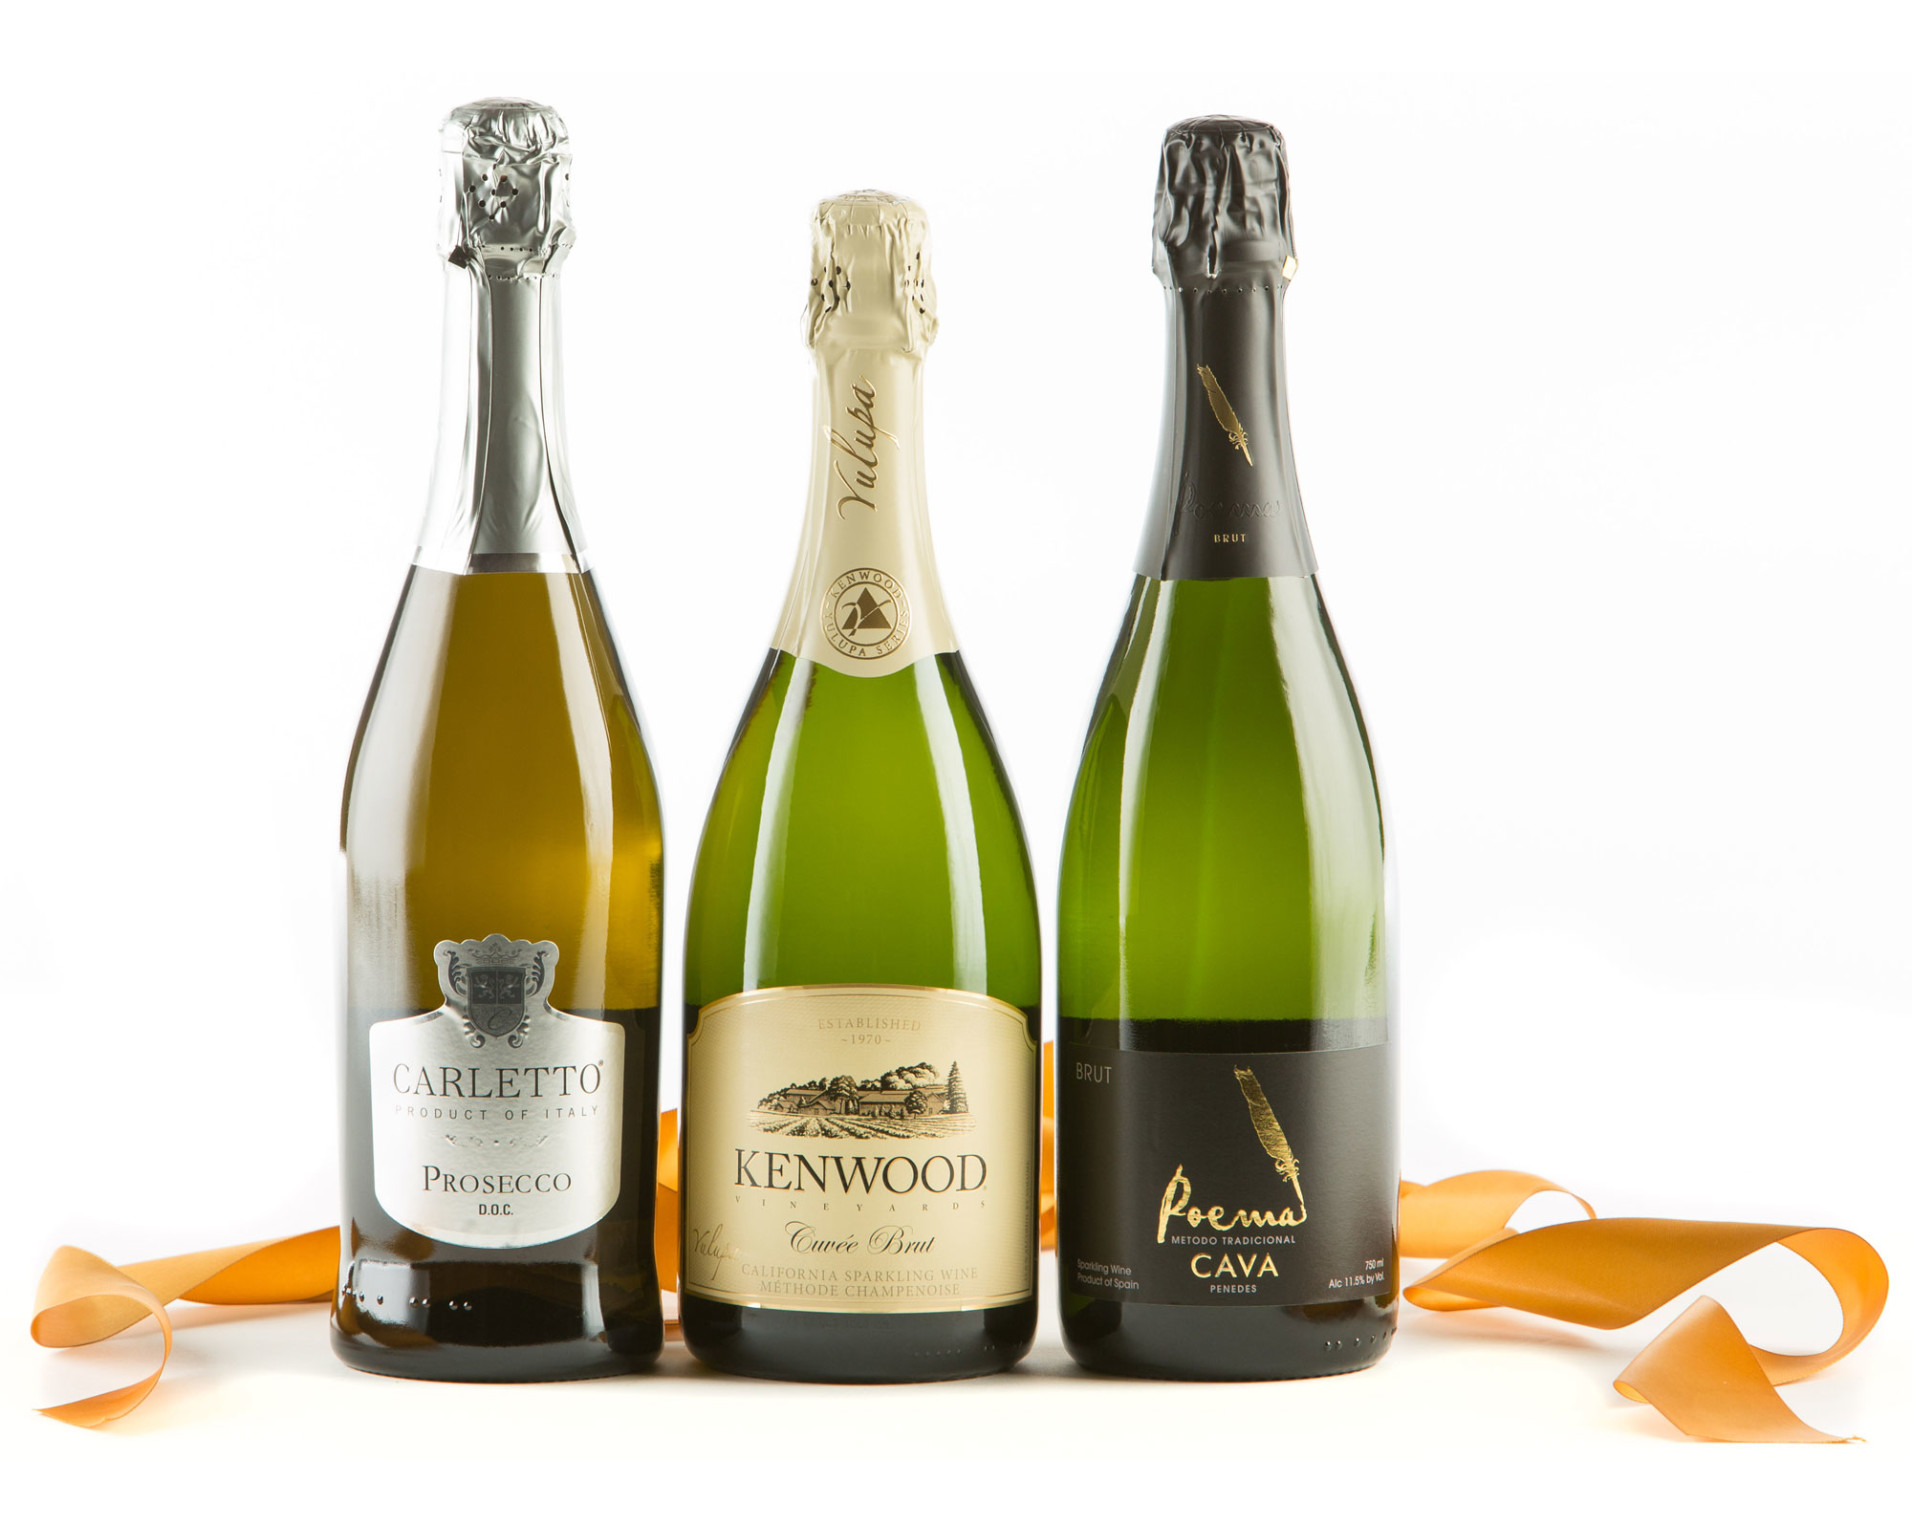 Sparkling wines go very well with light, flaky fish like Branzino. Try a dry Prosecco, Brut or Cava